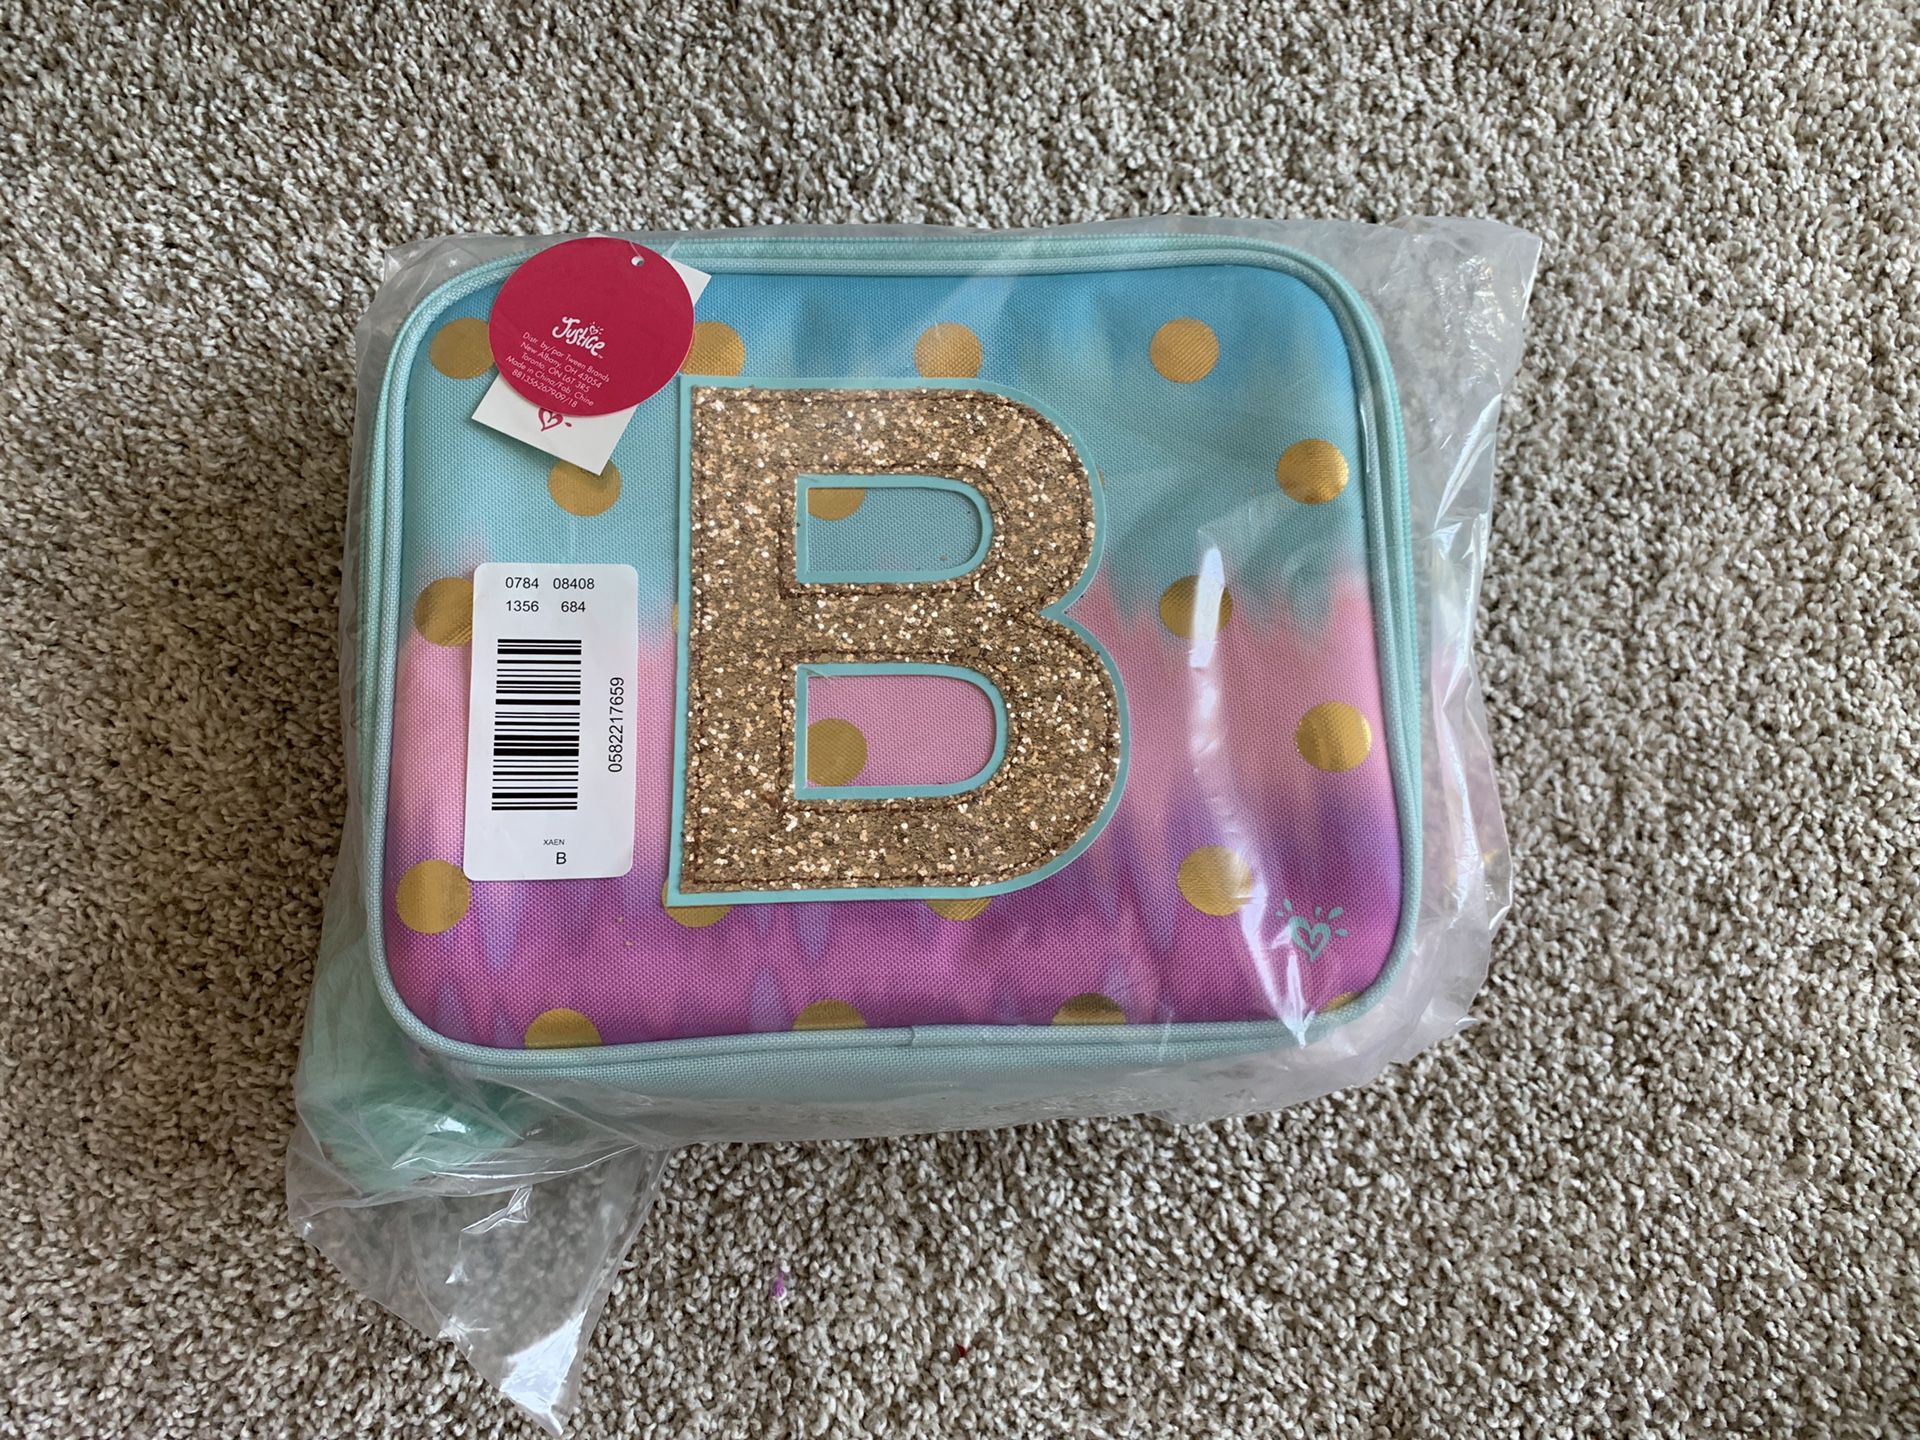 B lunchbox from justice new